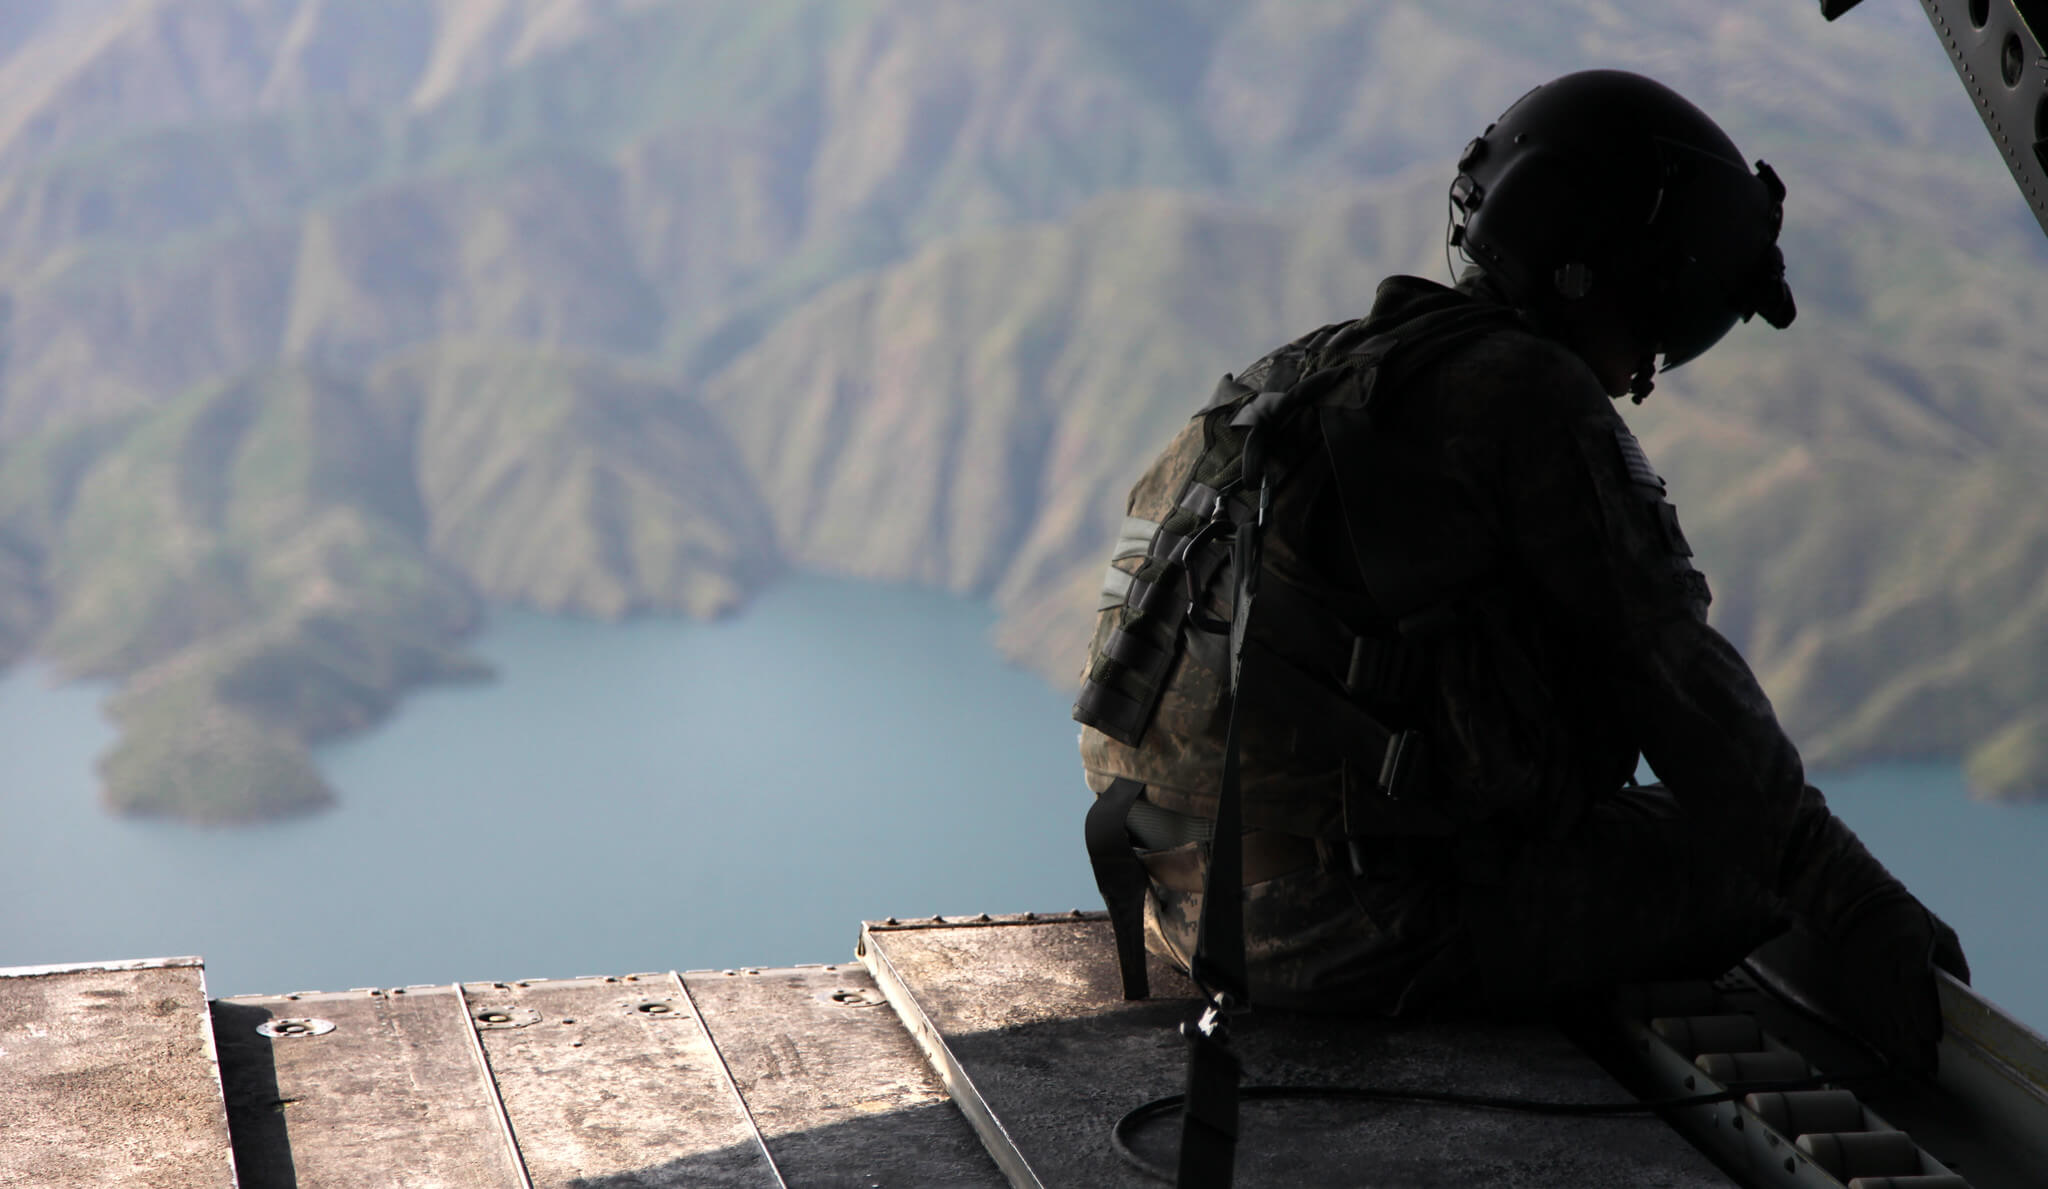 U.S. Army soldier observes the scenery while he sits on the ramp of a CH-47 Chinook in Khyber - Pakhtunkhwa, Pakistan. In 2010. a flood affected nearly 20 million Pakistanis, forcing many from their homes. © U.S. Army photo